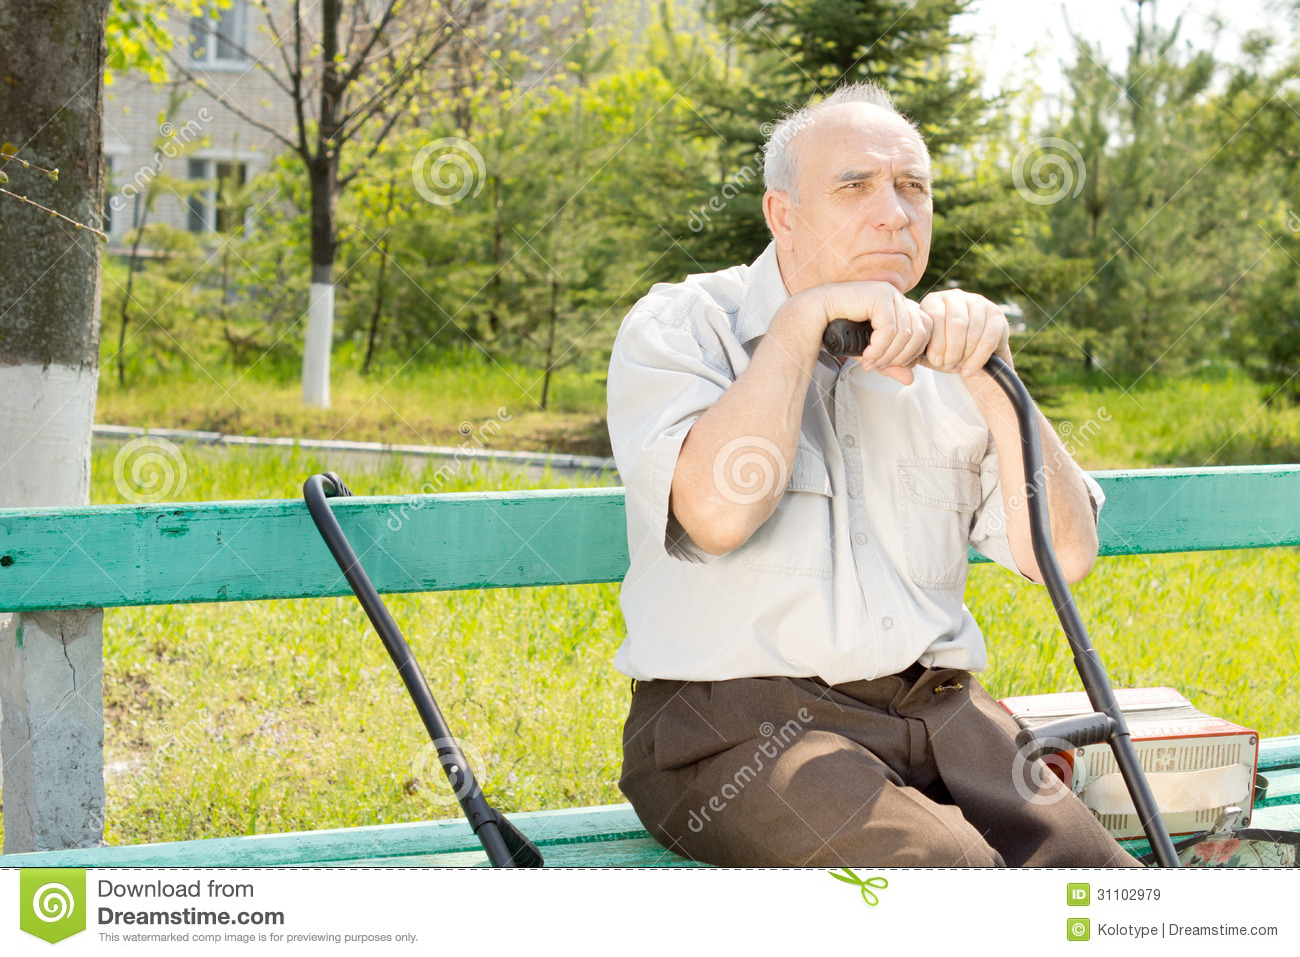 Old Man Outdoors Royalty Free Stock Images - Image: 31102979